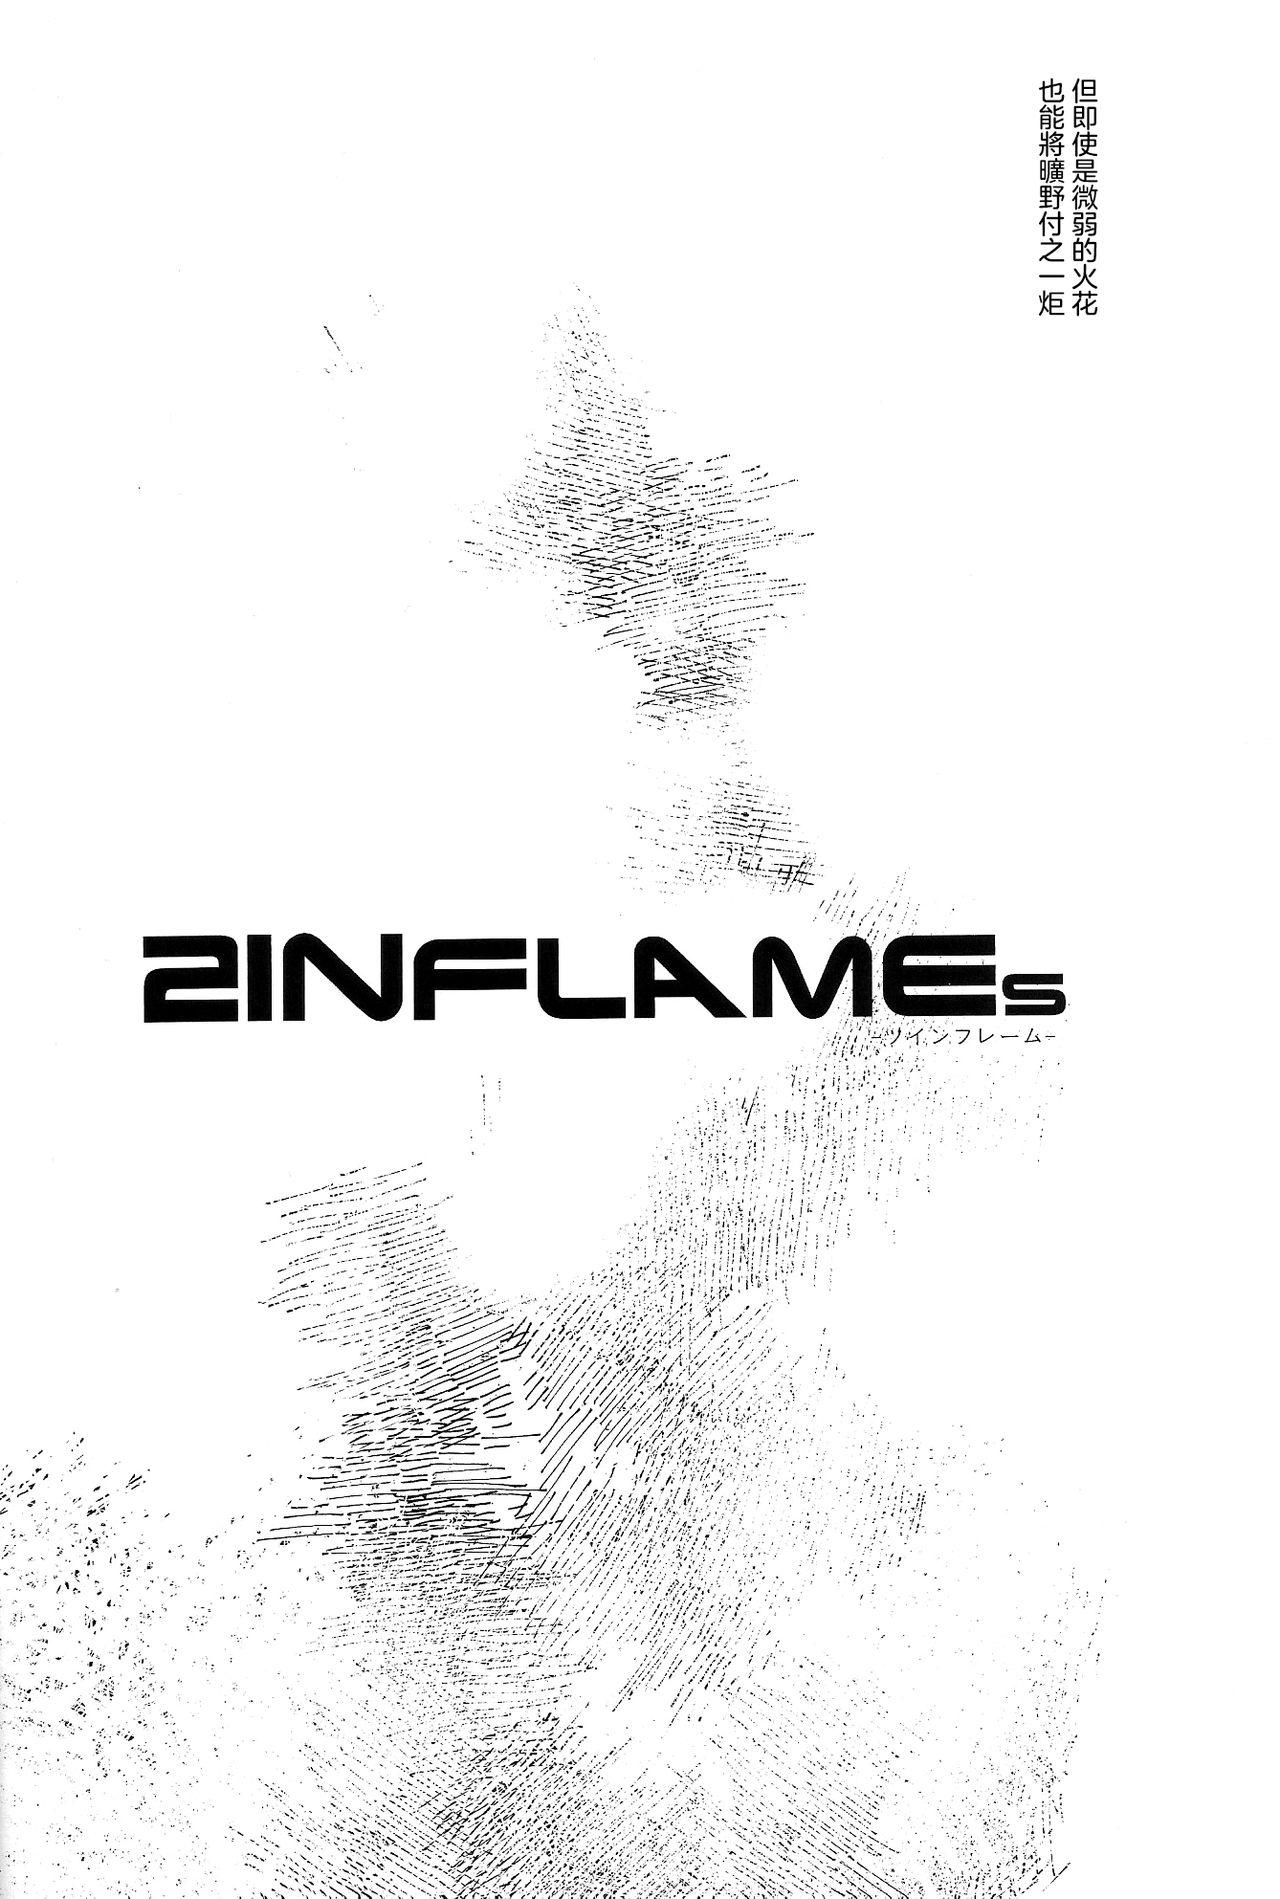 2INFLAMEs 3